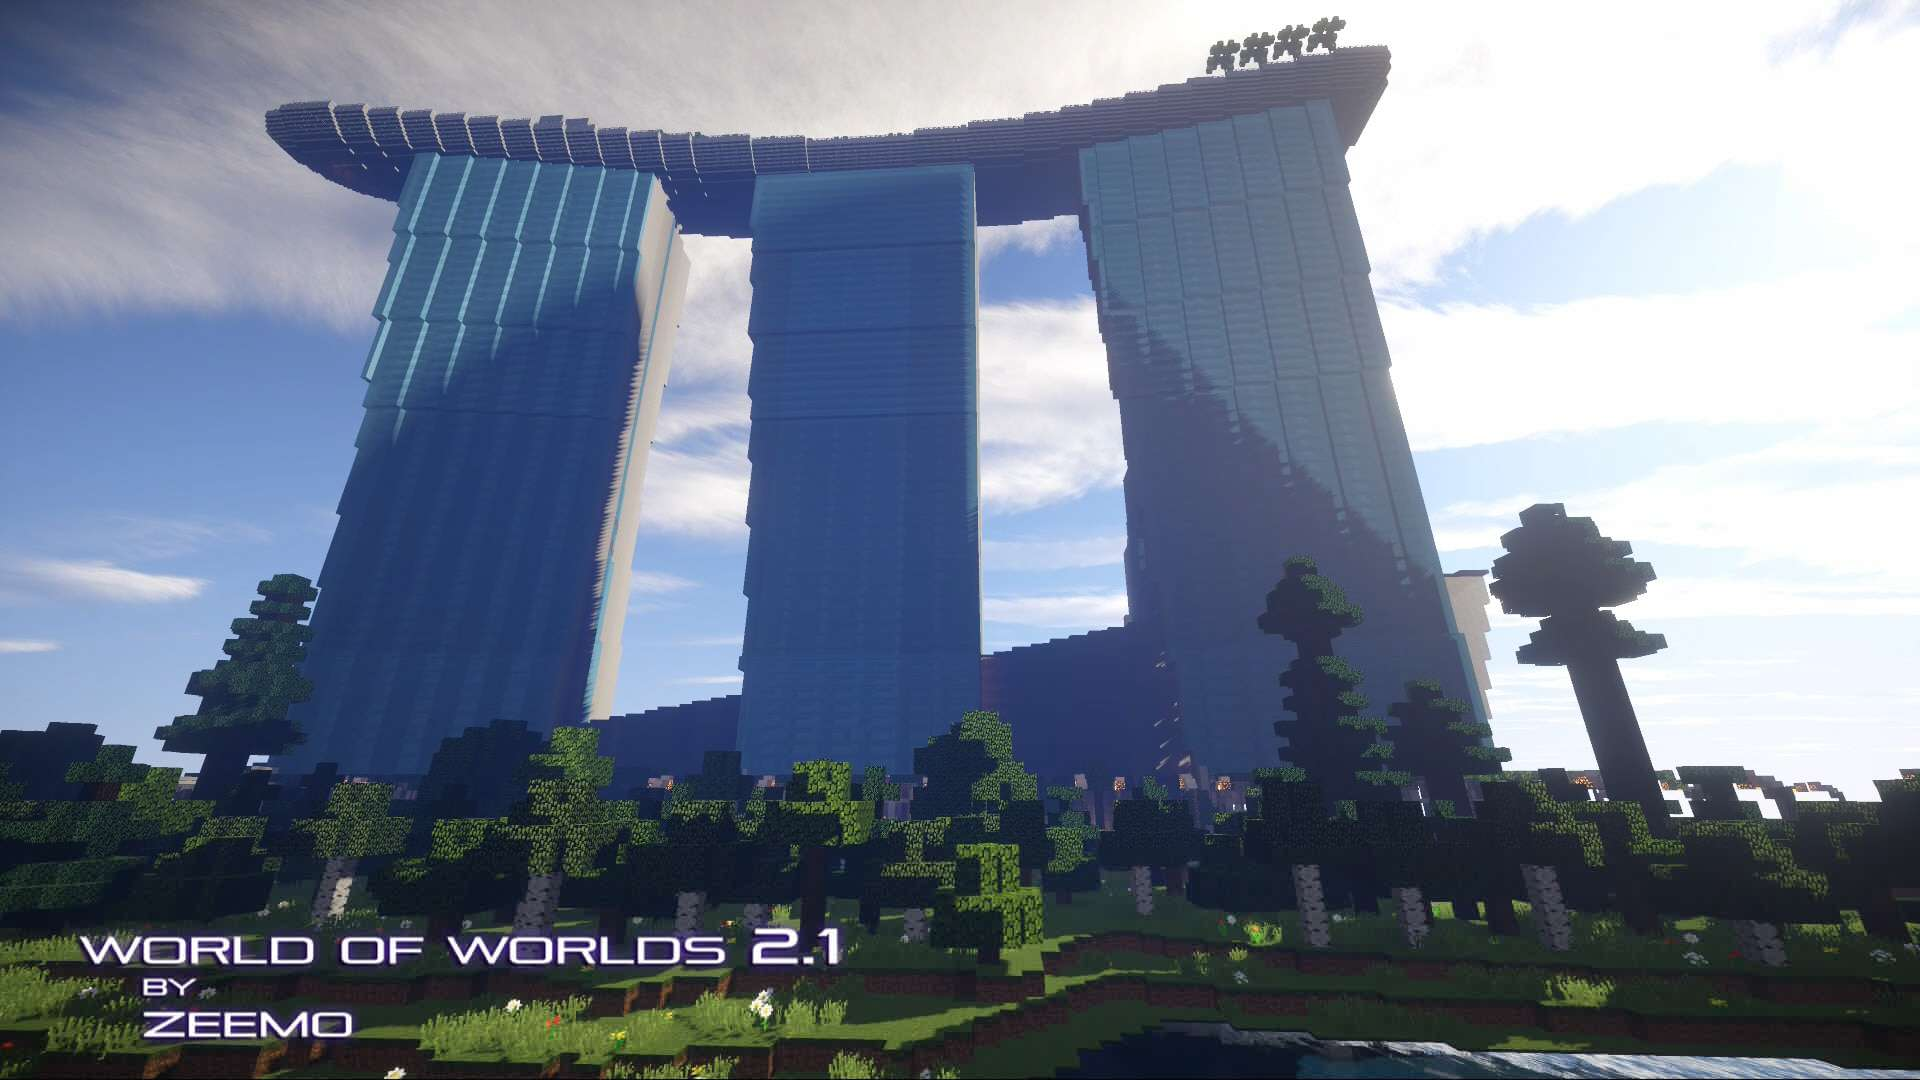 World of Worlds 2.1 update 6